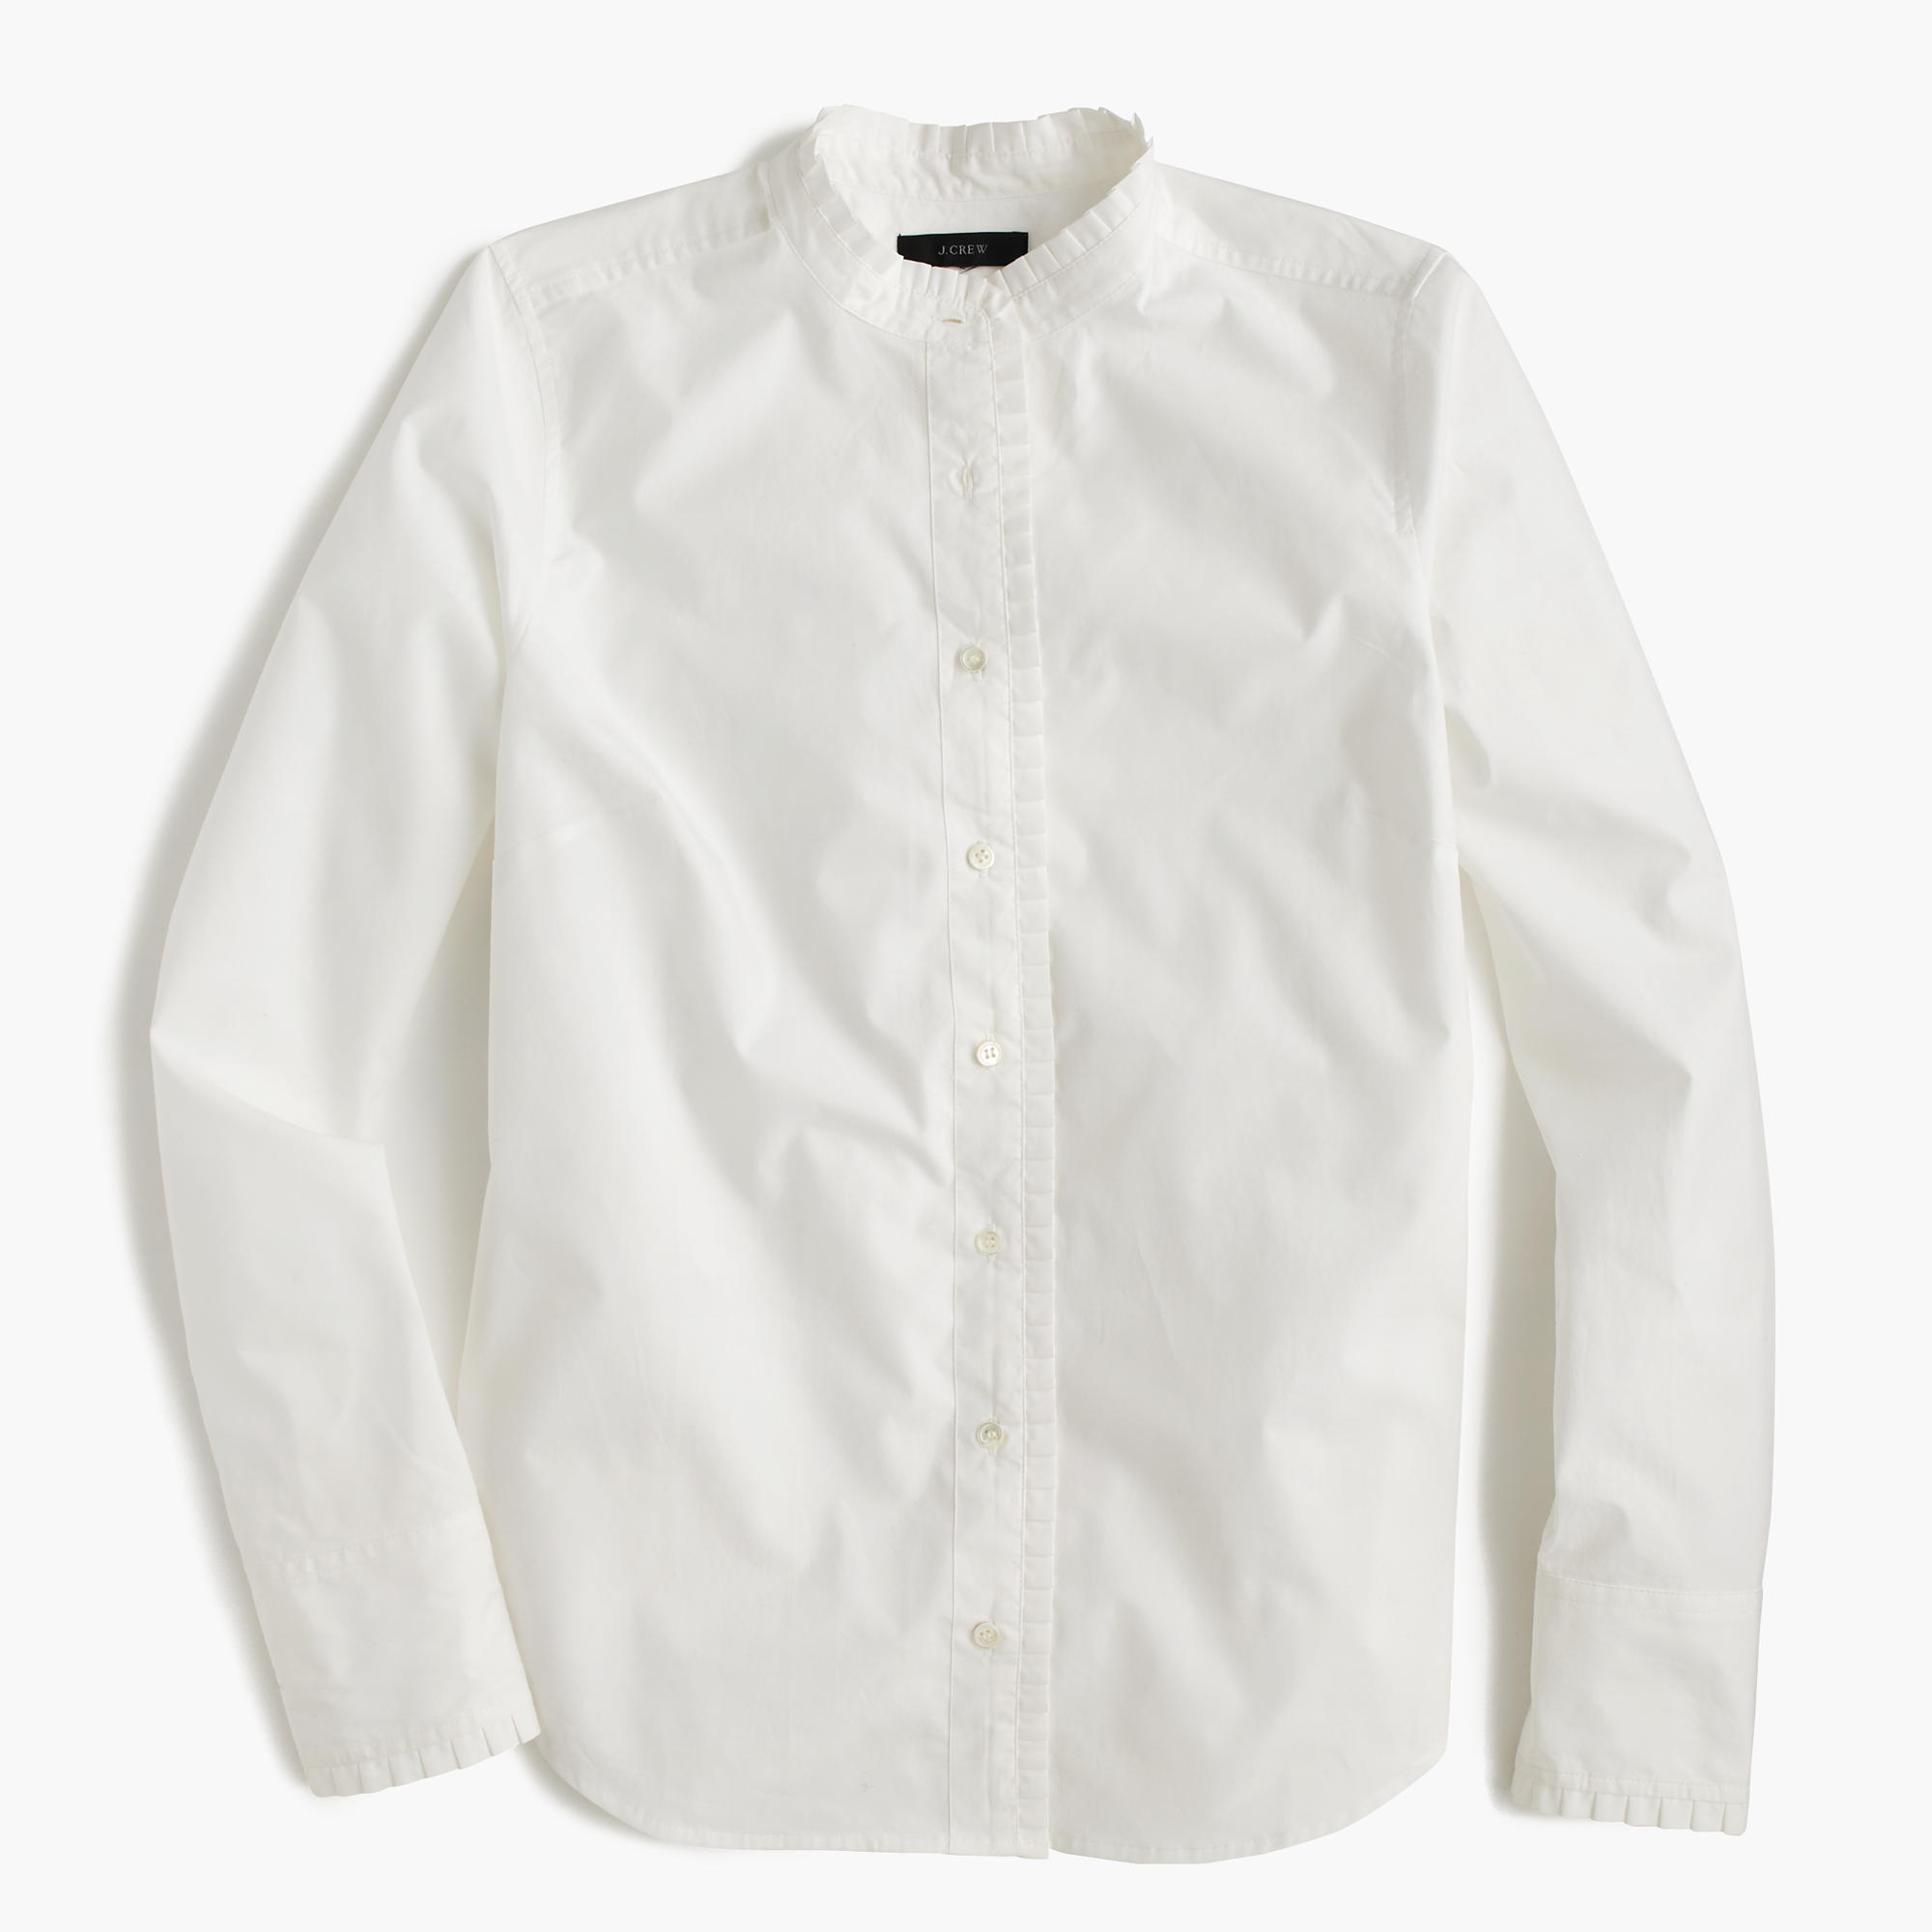 Ruffled Button-Up Shirt In White : Women's Shirts | J.Crew